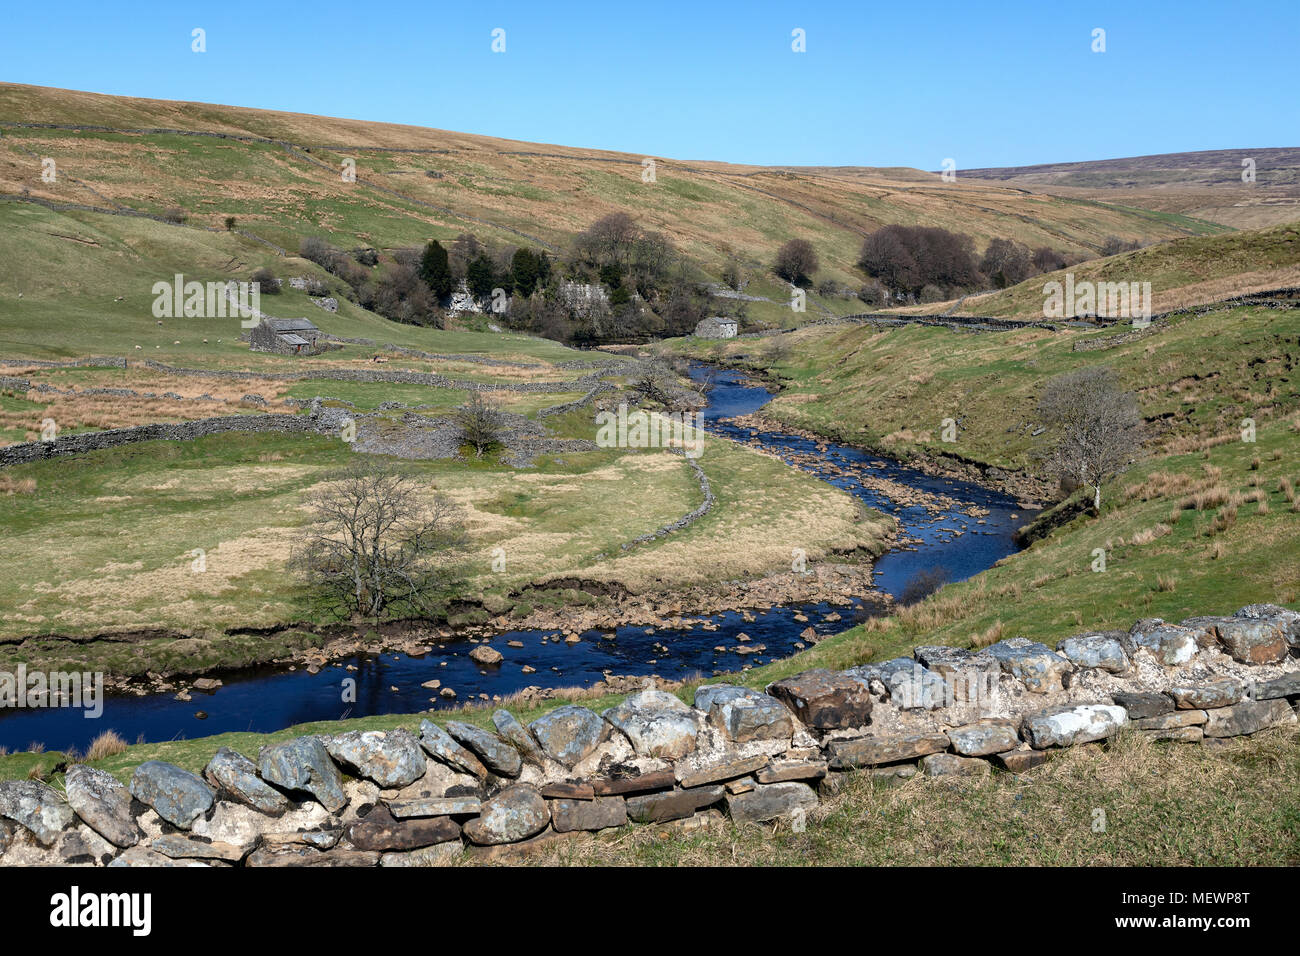 Wensleydale in the Yorkshire Dales National Park in Yorkshire, England. - Stock Image